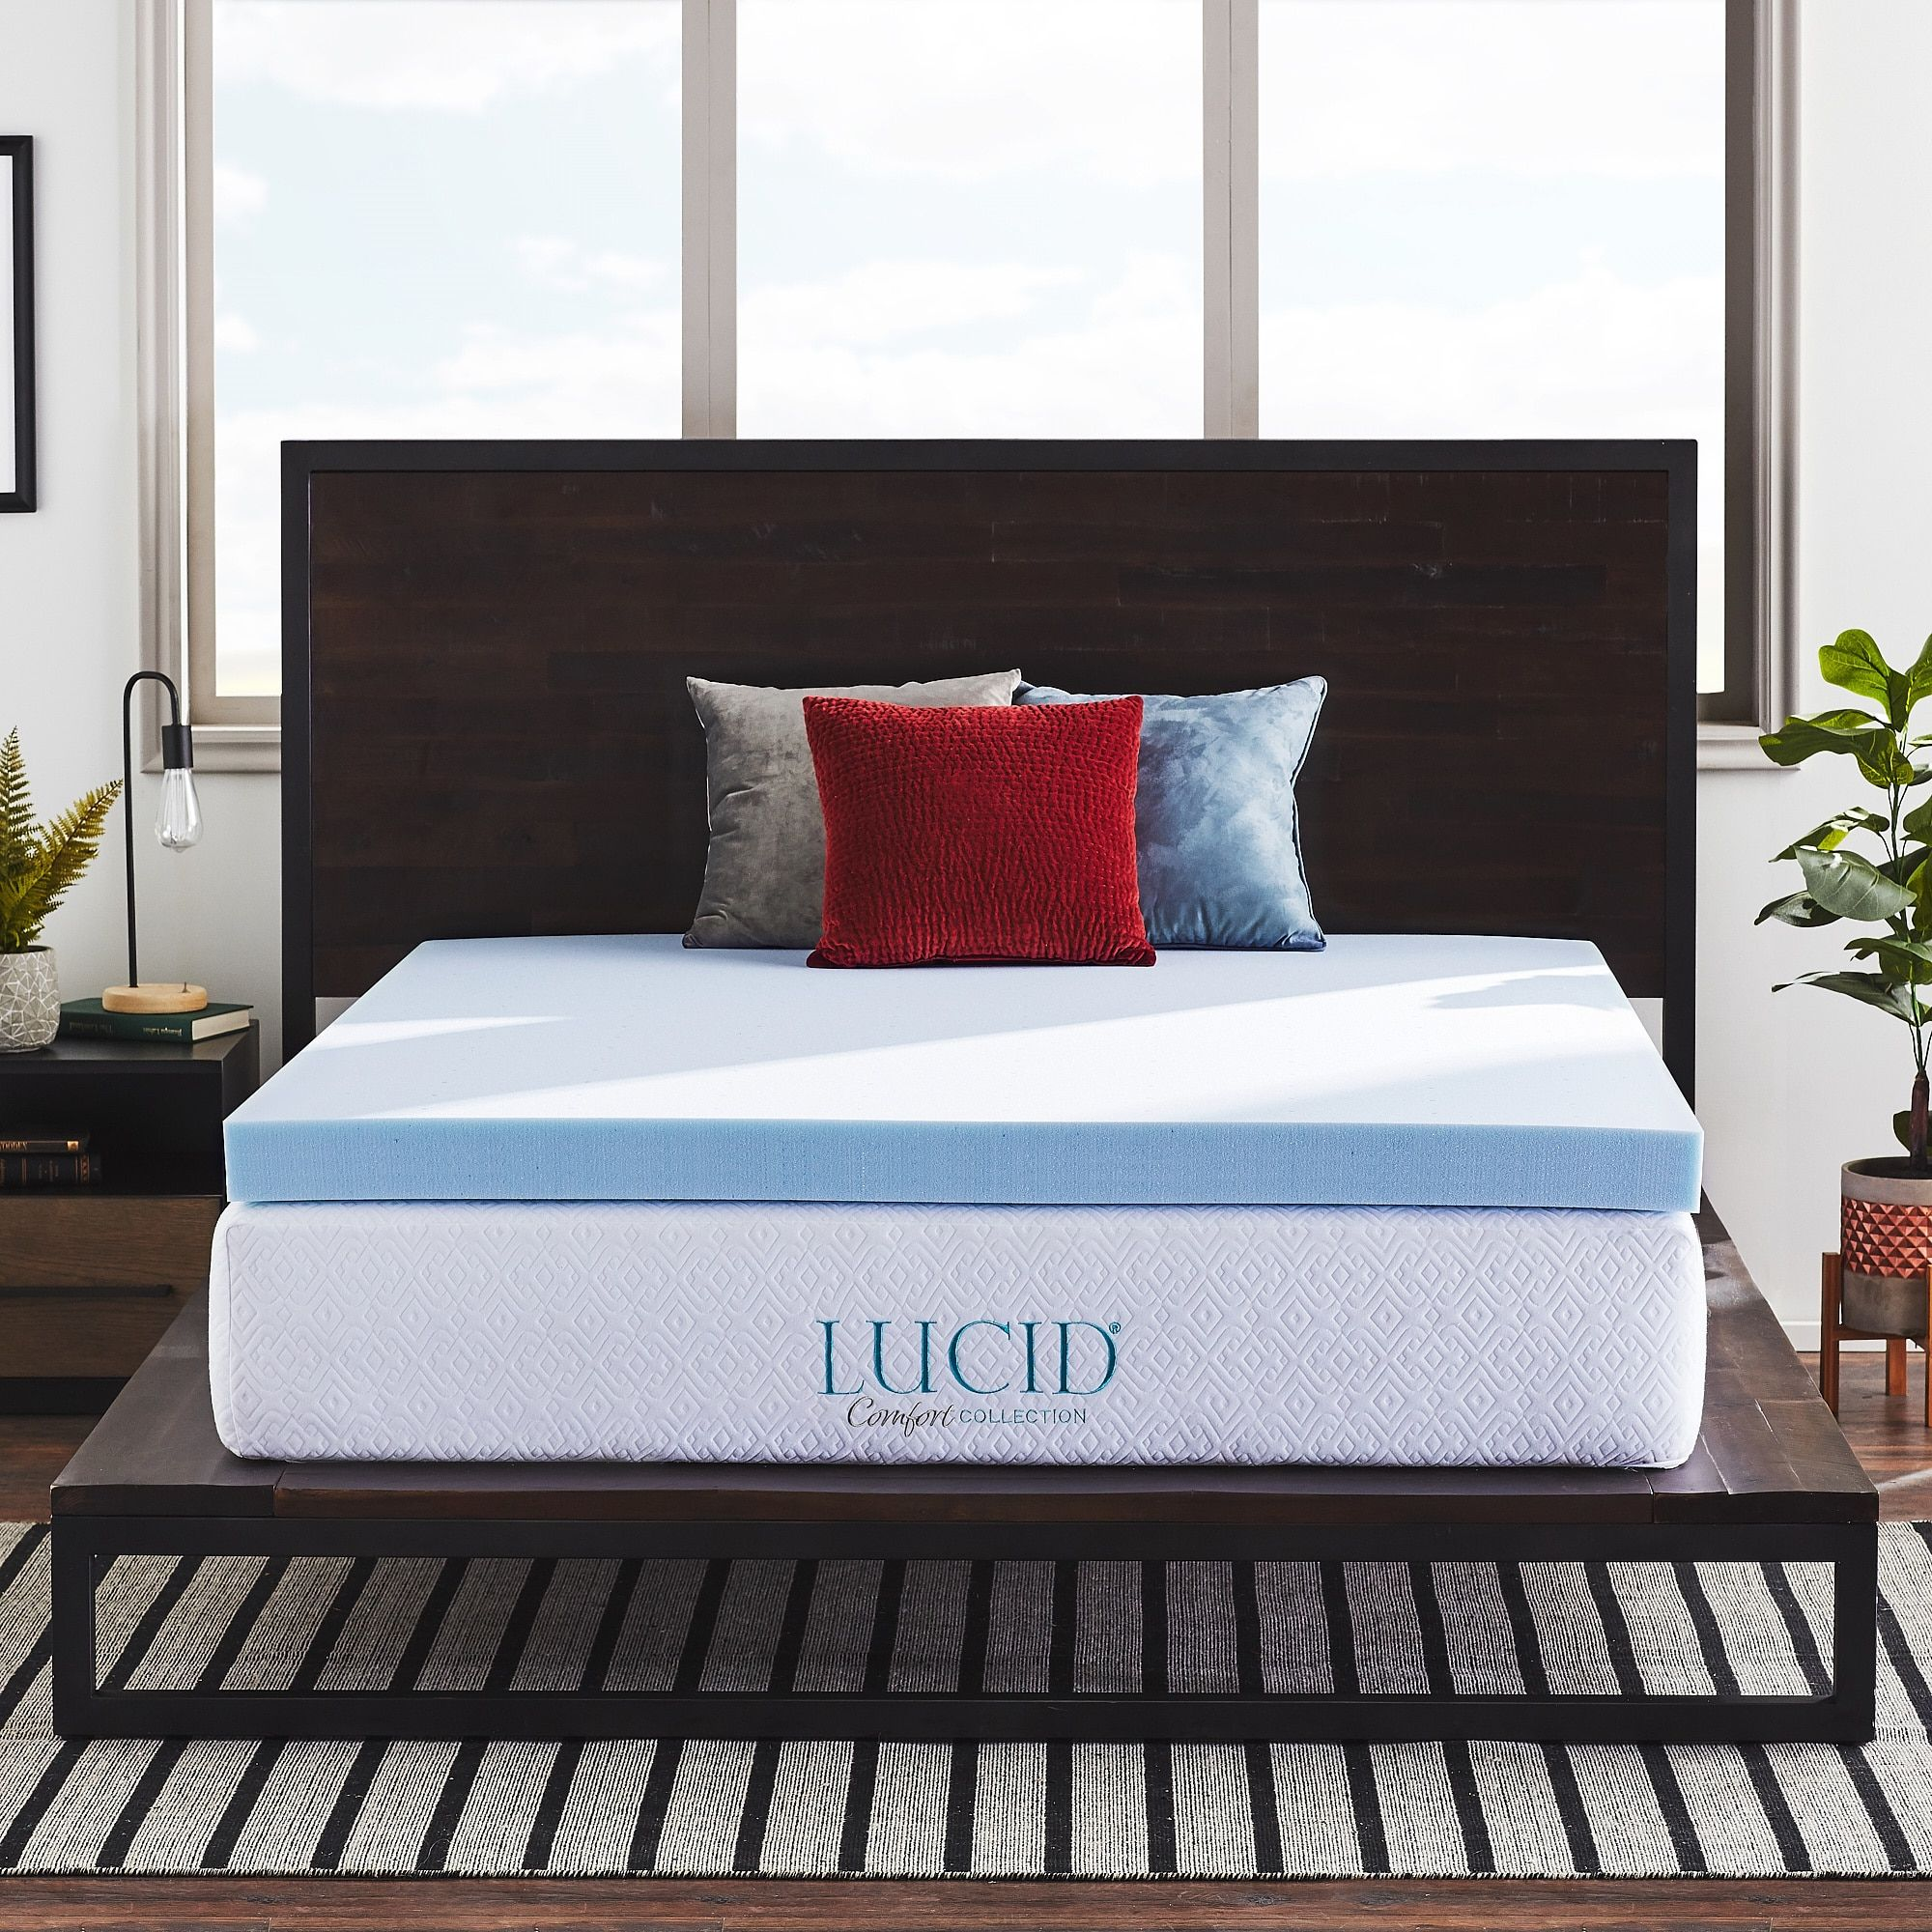 Lucid Comfort Collection 4 Inch Gel Memory Foam Mattress Topper